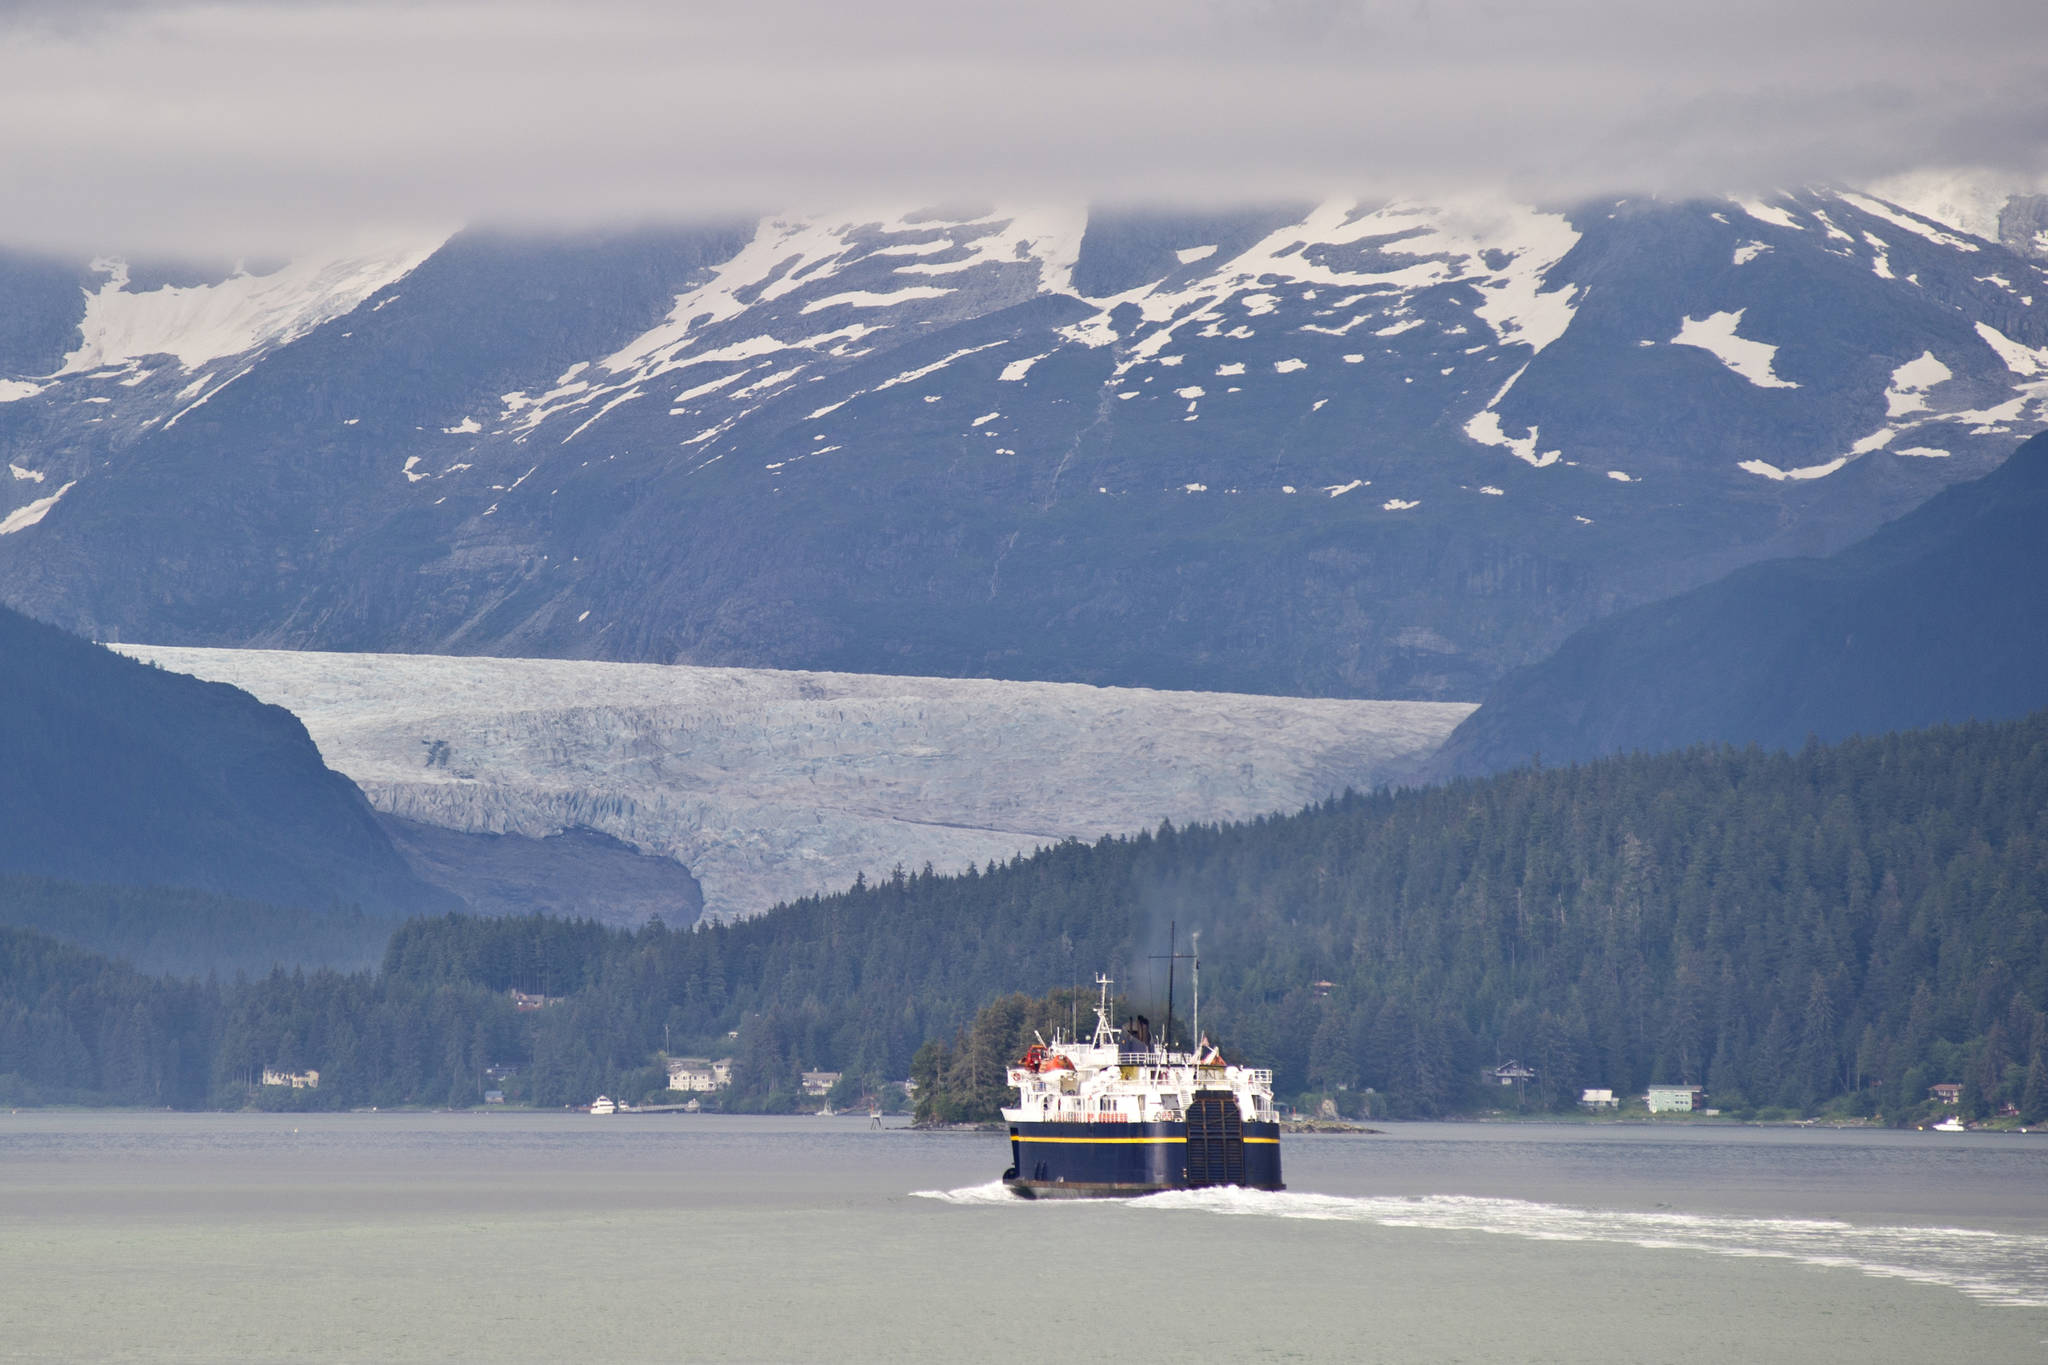 The Alaska Marine Highway ferry LeConte pulls into Auke Bay in Juneau, Alaska. (Michael Penn | Juneau Empire File)